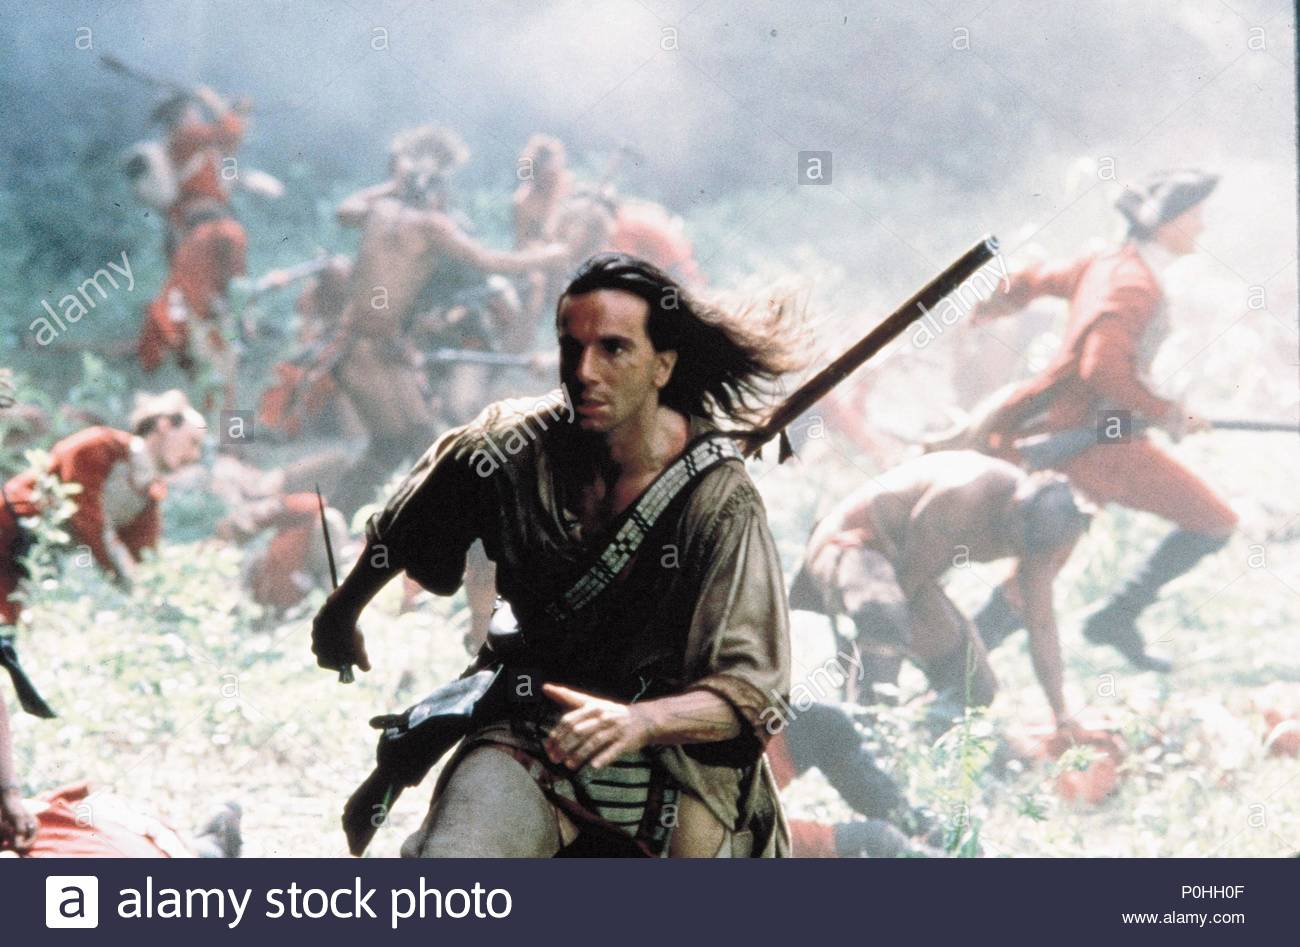 Original Film Title: THE LAST OF THE MOHICANS.  English Title: THE LAST OF THE MOHICANS.  Film Director: MICHAEL MANN.  Year: 1992.  Stars: DANIEL DAY-LEWIS. Copyright: Editorial inside use only. This is a publicly distributed handout. Access rights only, no license of copyright provided. Mandatory authorization to Visual Icon (www.visual-icon.com) is required for the reproduction of this image. Credit: 20TH CENTURY FOX/MORGAN CREEK / Album - Stock Image